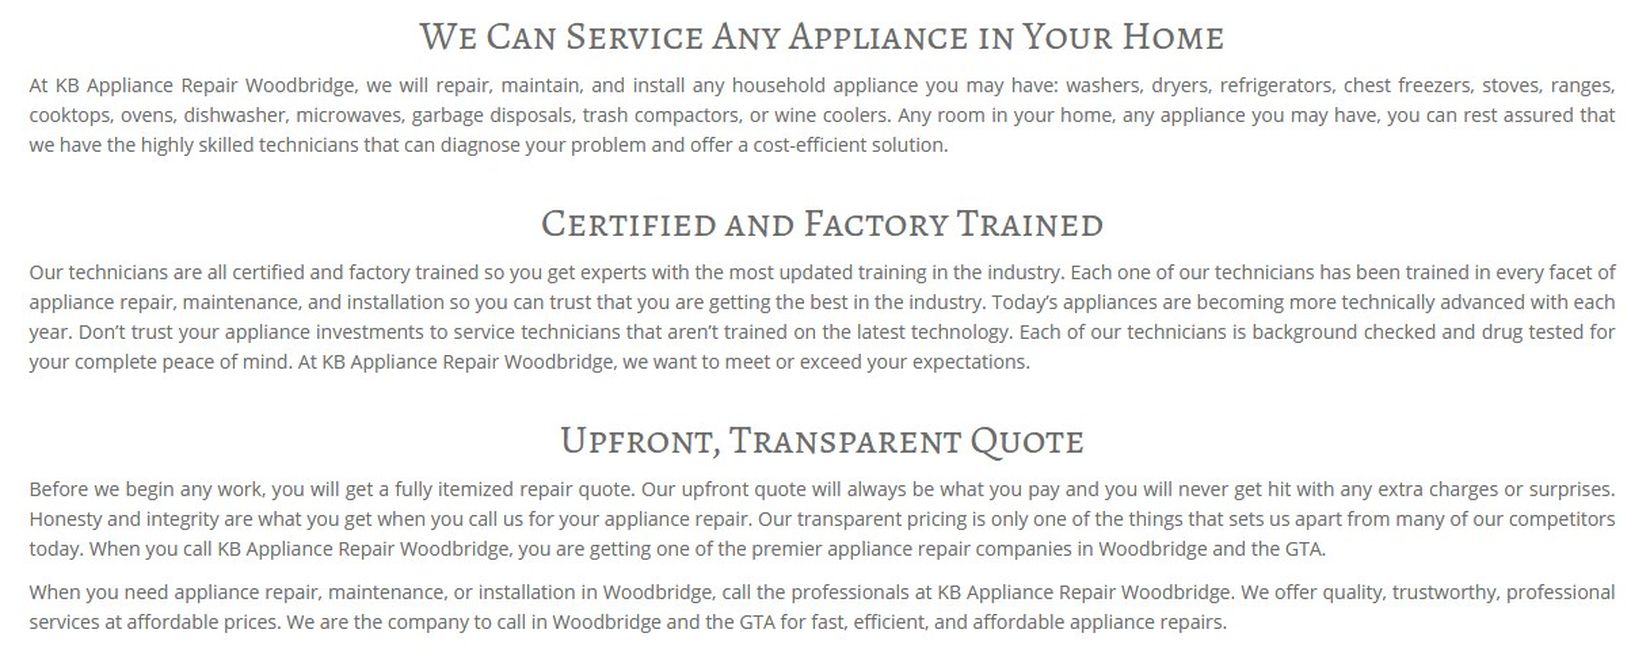 KB Appliance Repair Woodbridge 4700 Hwy 7 Unit 713 Woodbridge, ON L4L 0B4 (289) 236-0026 https://appliancerepairwoodbridge.ca/ Woodbridge ON Appliance Repair Appliance Repair IN Woodbridge Appliance Repair Woodbridge Appliance Repair Woodbridge ON Woodbridge Appliance Repair